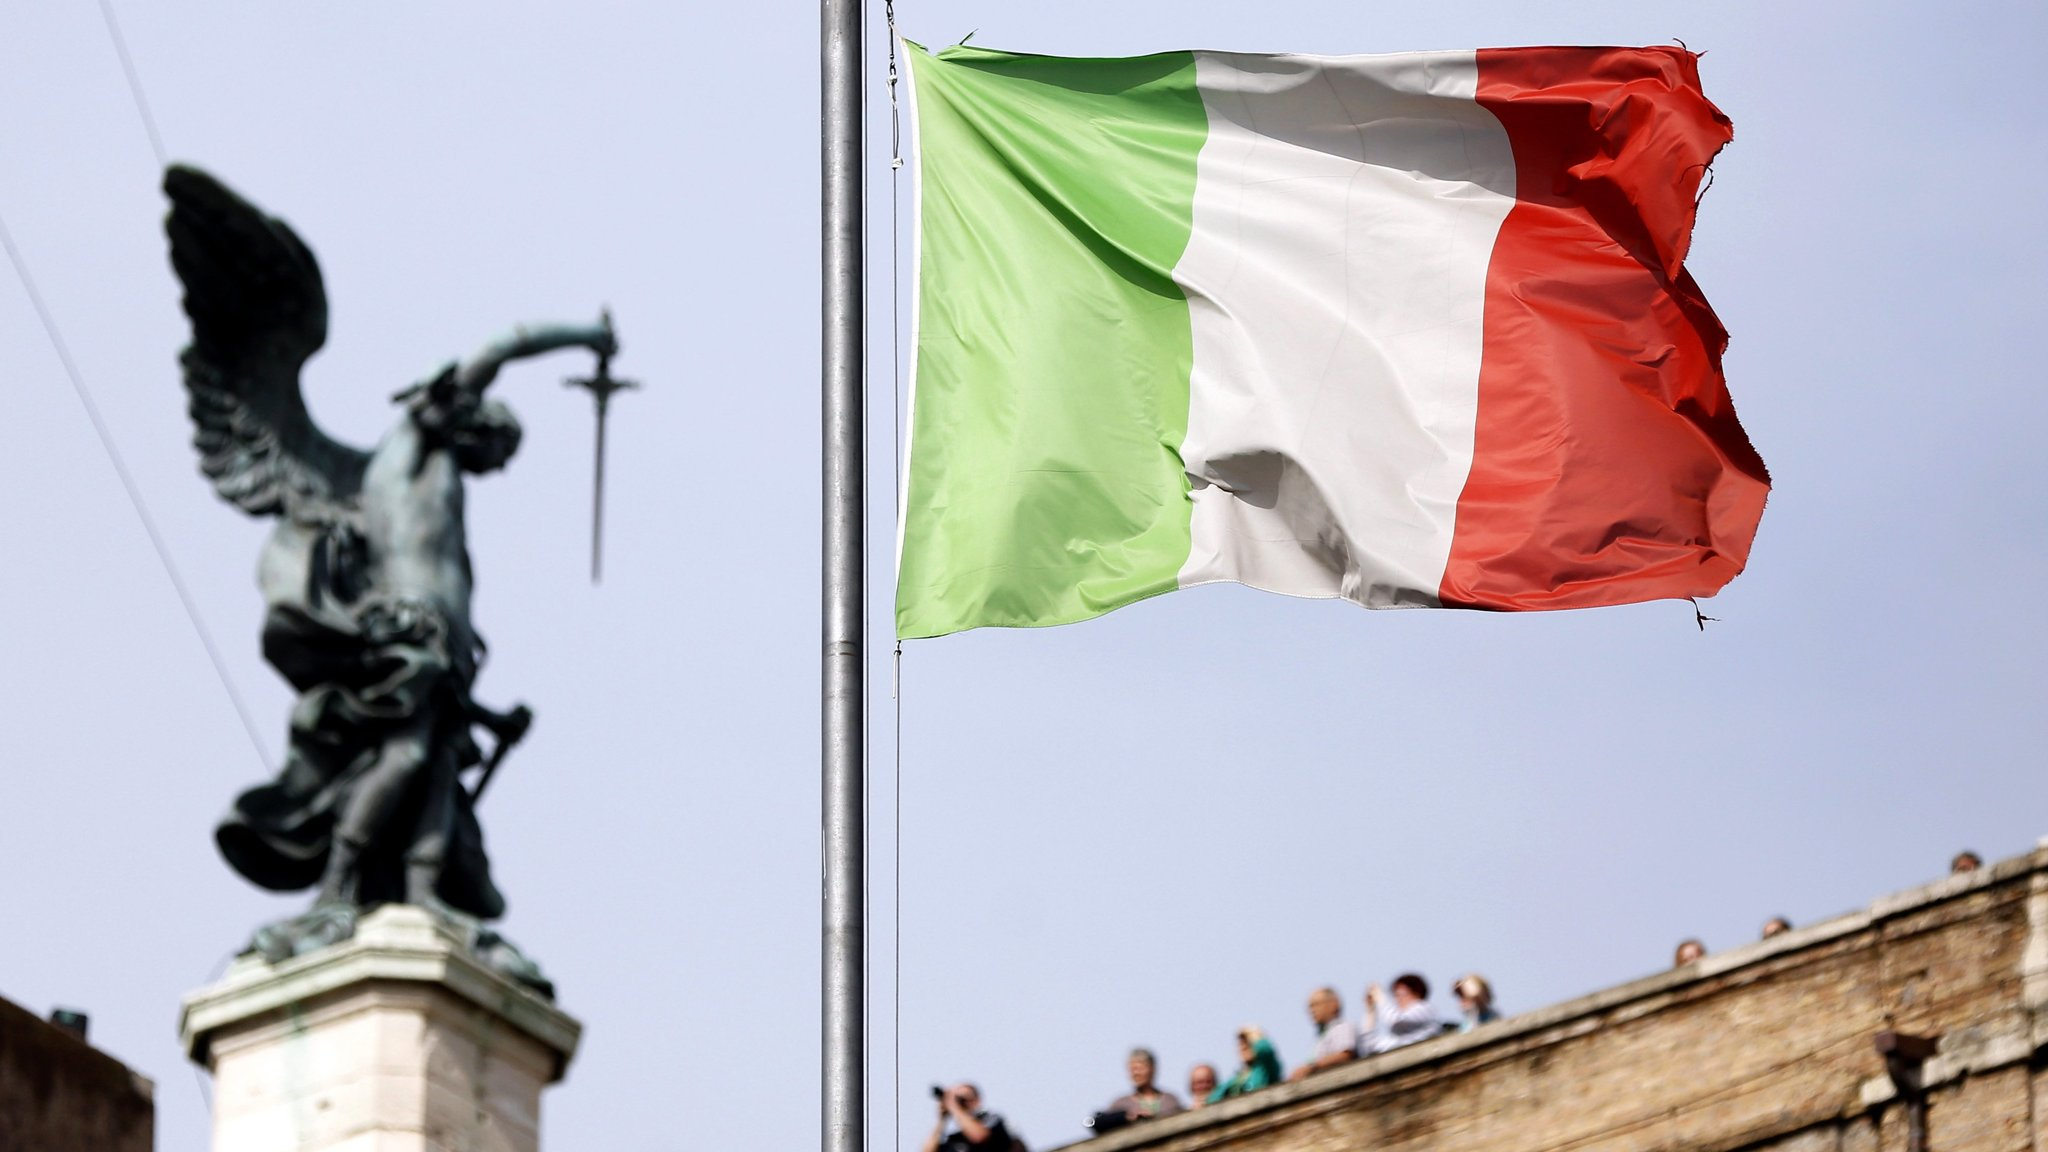 Italy's parties urged to give voters 'realistic proposals'